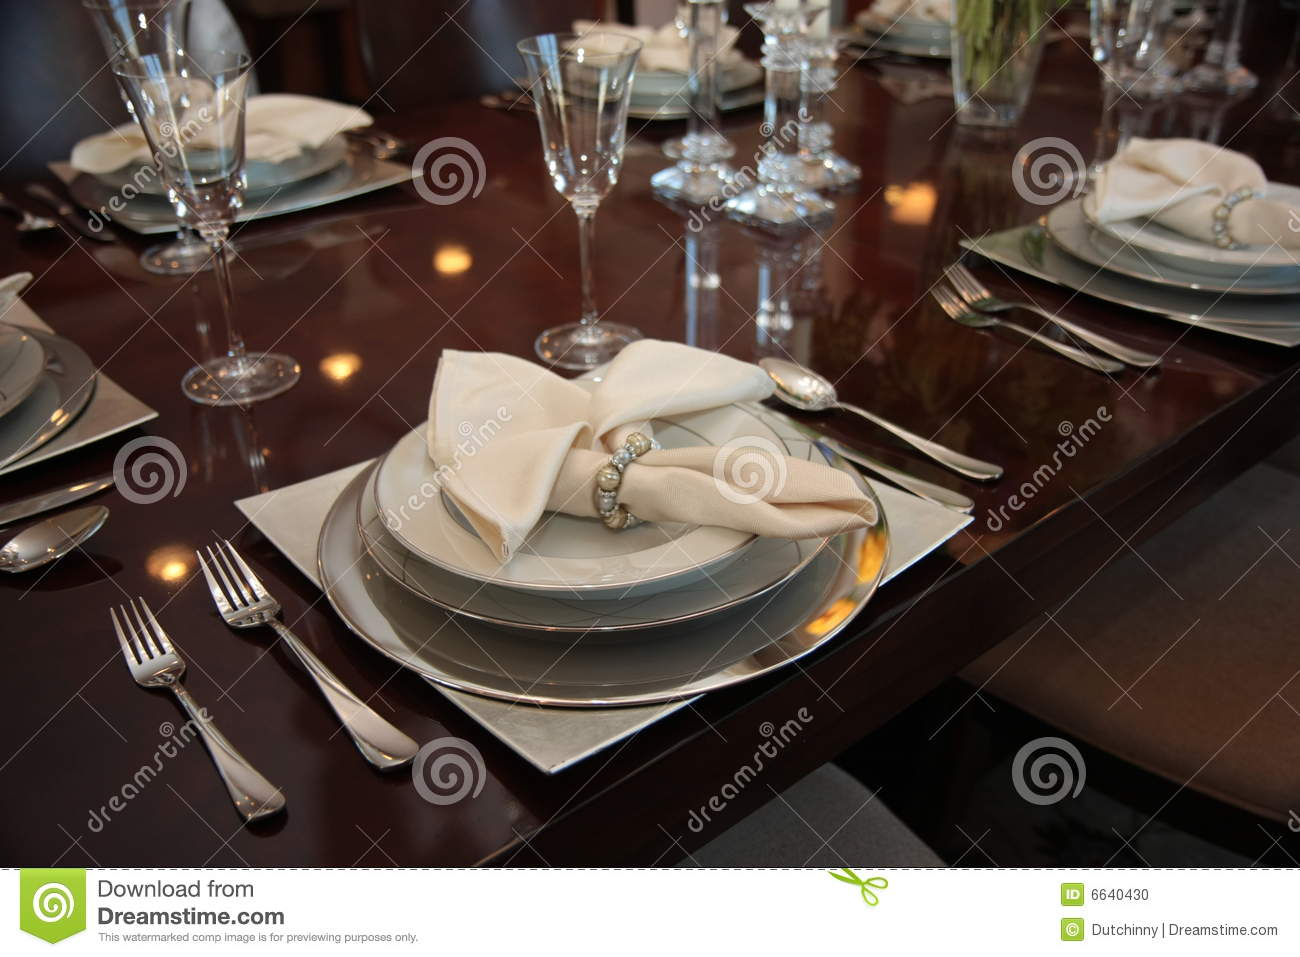 Elegant dinner table setting - Good Elegant Dining Room Table Settings View Of A Beautiful Dark Table With Formal Elegant Place With Elegant Dinner Table